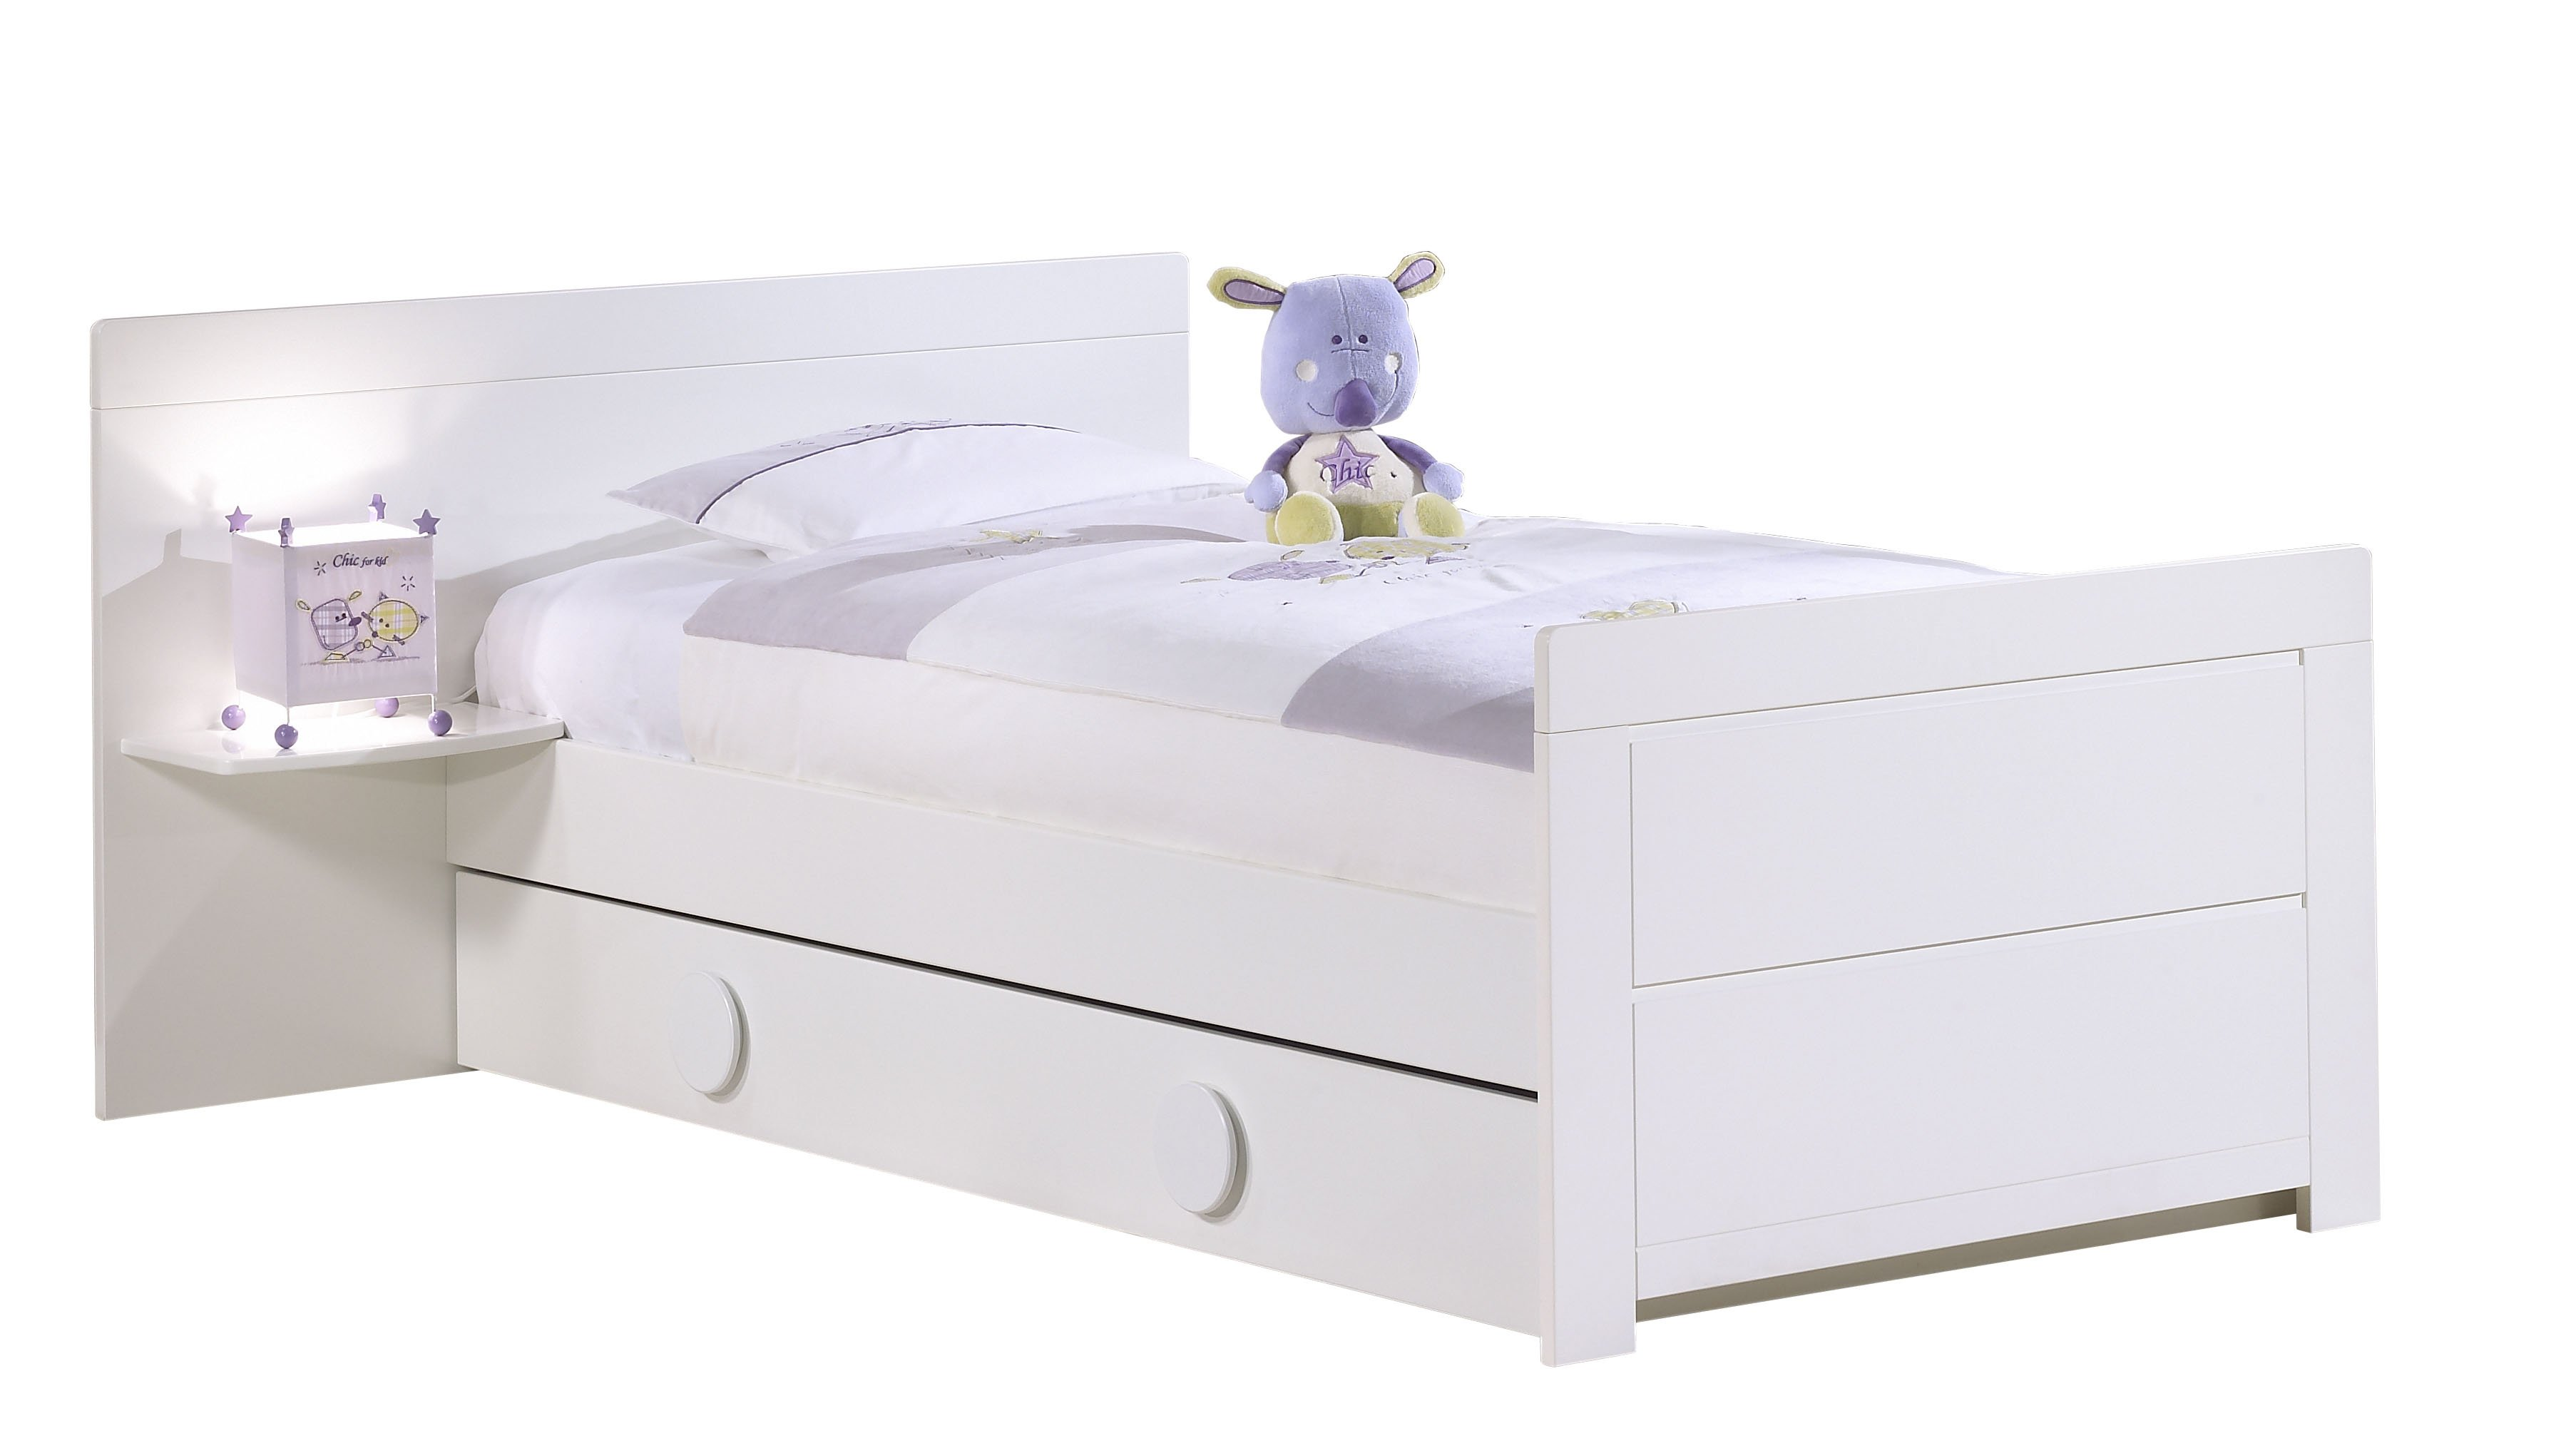 sauthon meubles lit junior 90x190 avec chevet zen blanc. Black Bedroom Furniture Sets. Home Design Ideas